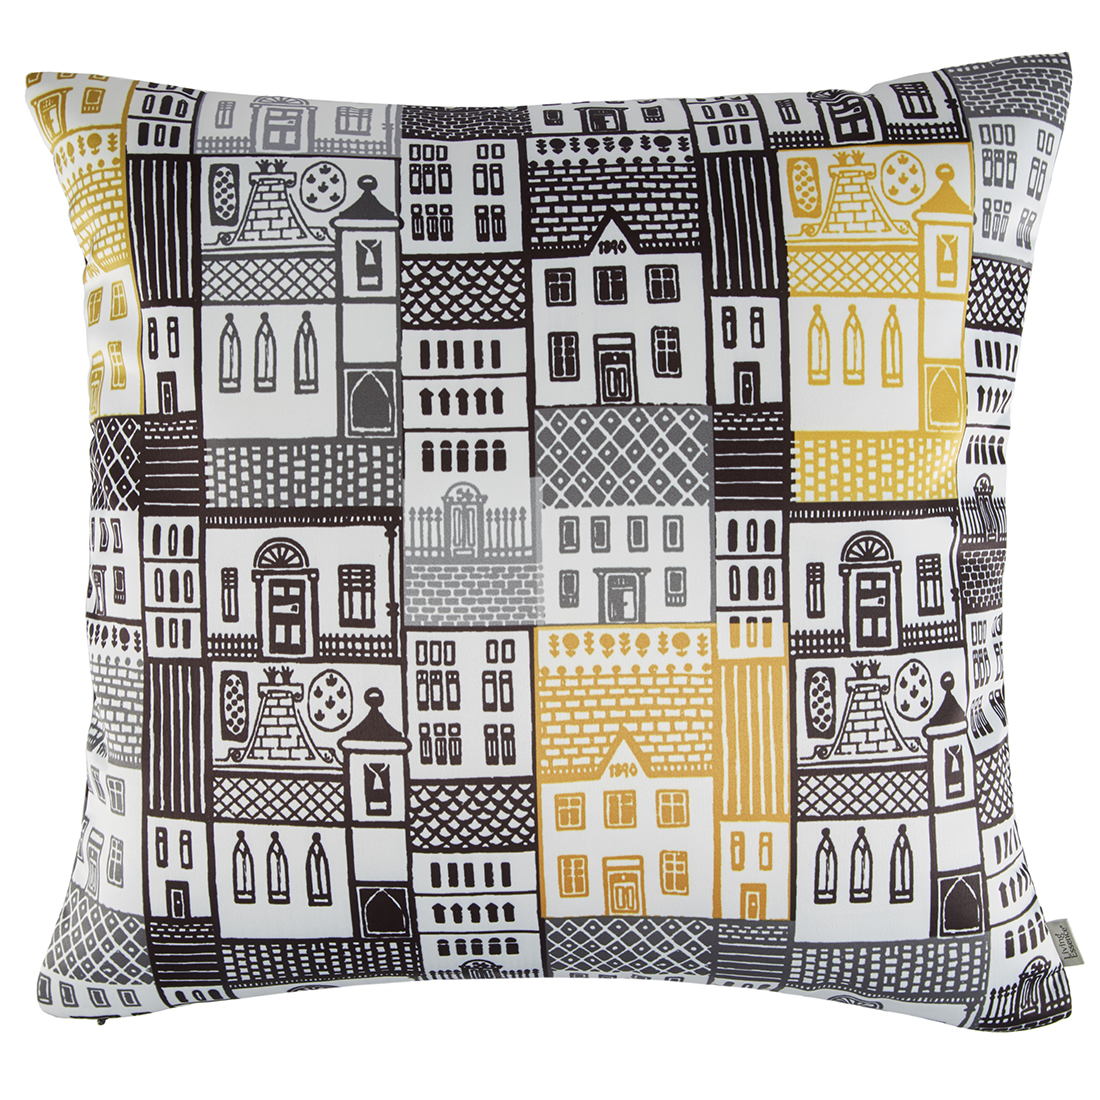 Digital Cushion Cover House Cushion Covers in Poly Satin Colour by Living Essence